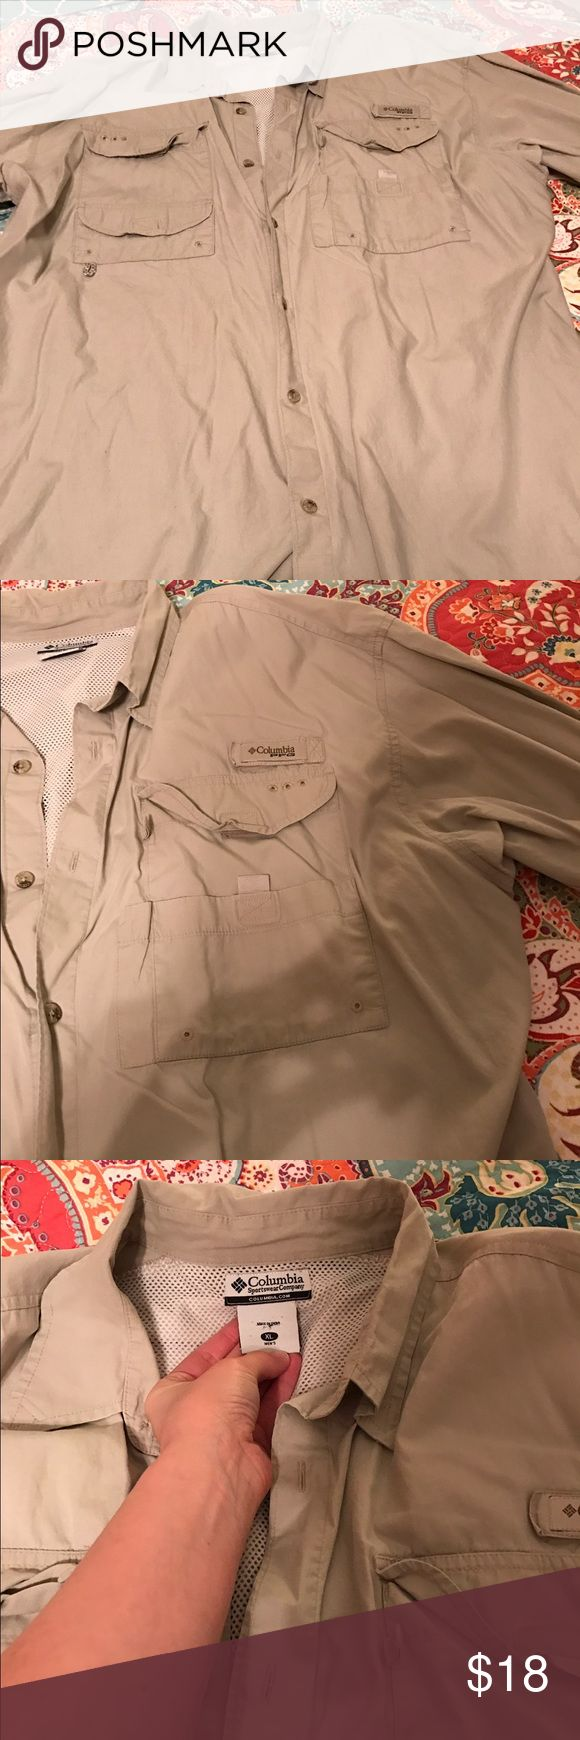 Tan Columbia PFG shirt Tan Columbia PFG. Worn but still has lots of life left Columbia Shirts Casual Button Down Shirts